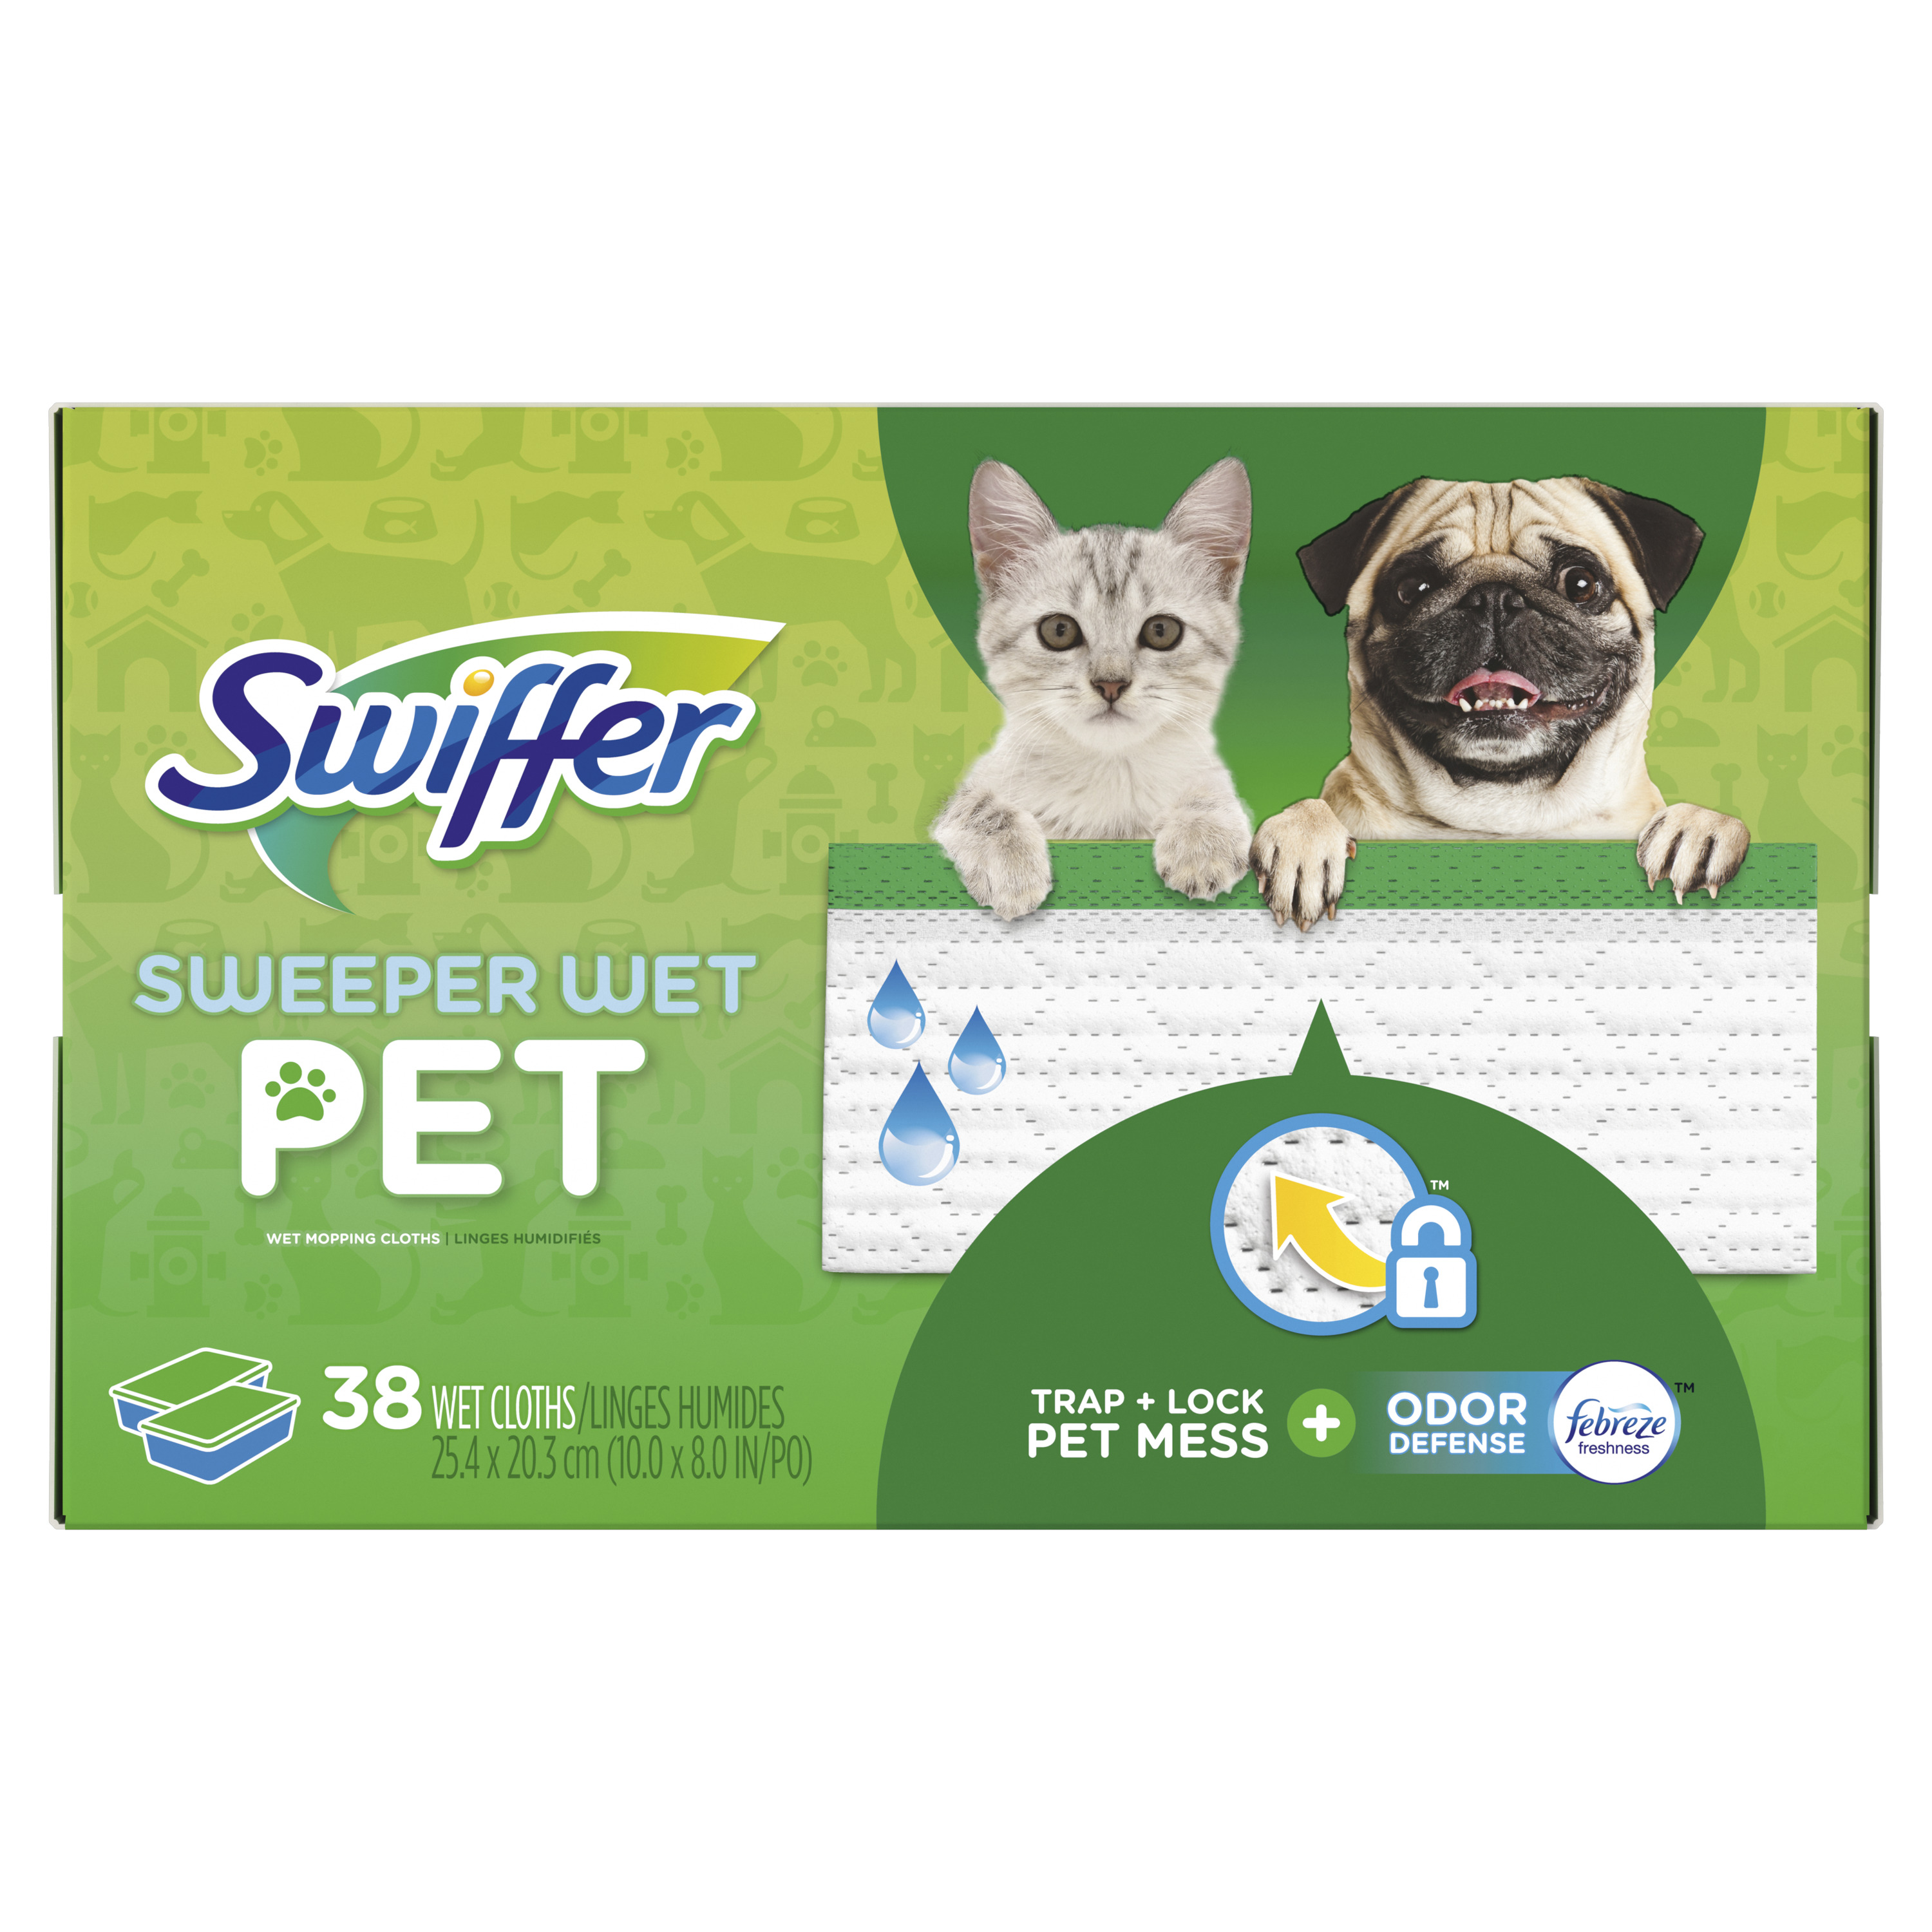 Swiffer Sweeper Wet Pet Mopping Cloths, 38 Count